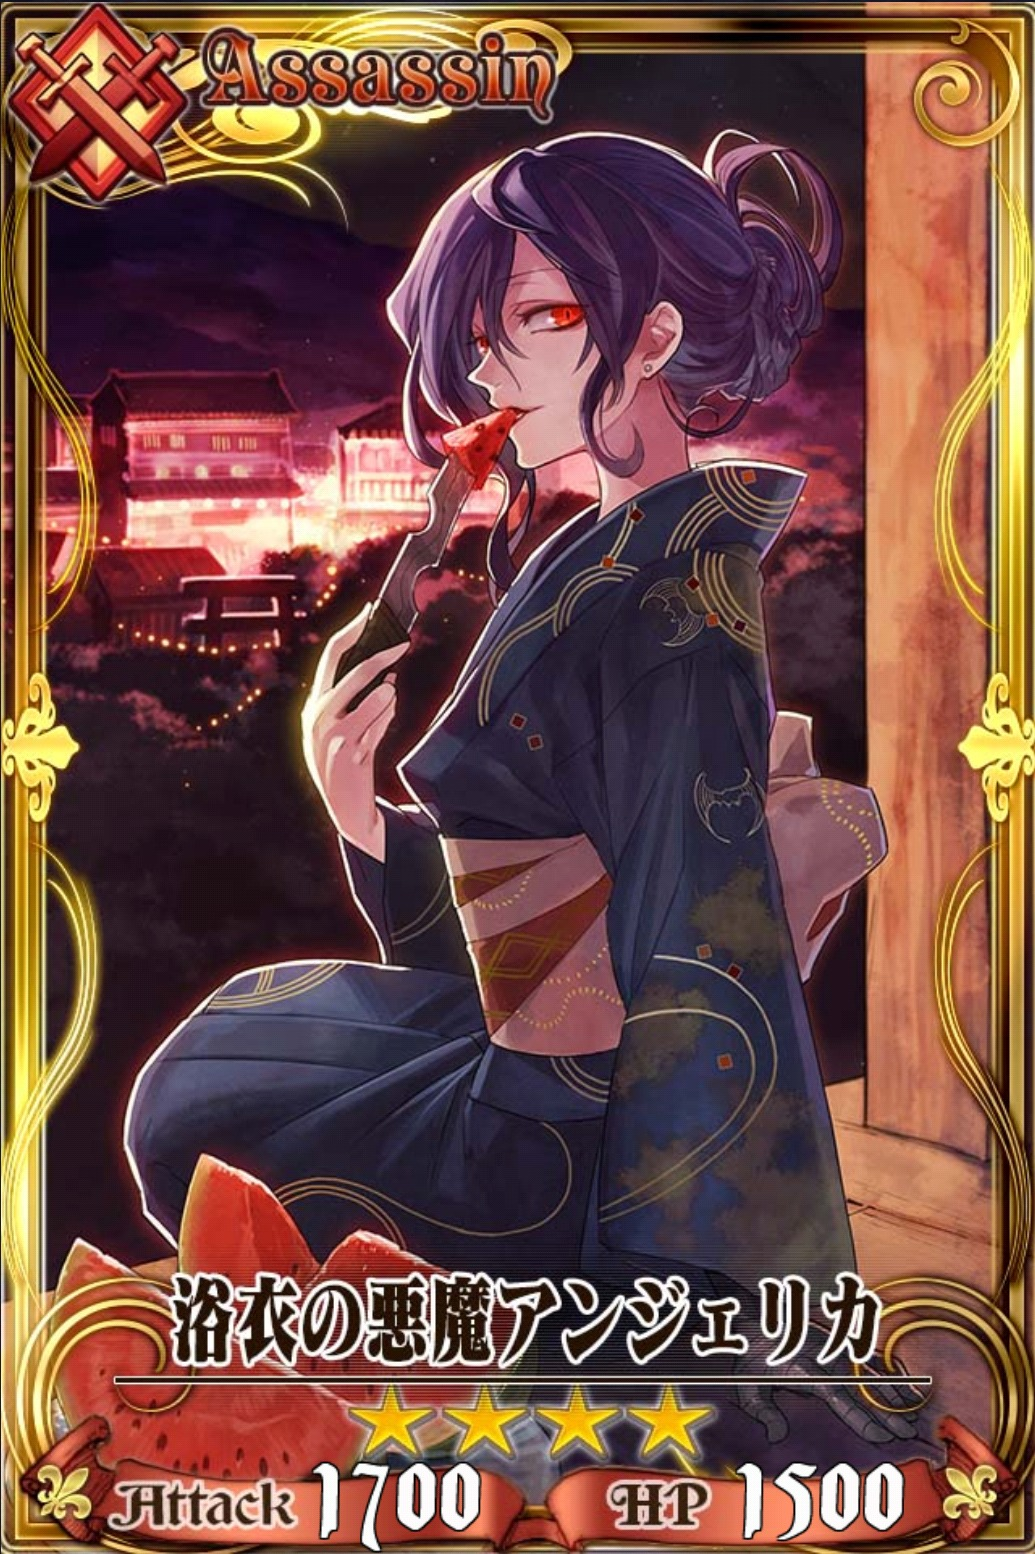 chainchronicle_2014-0822a